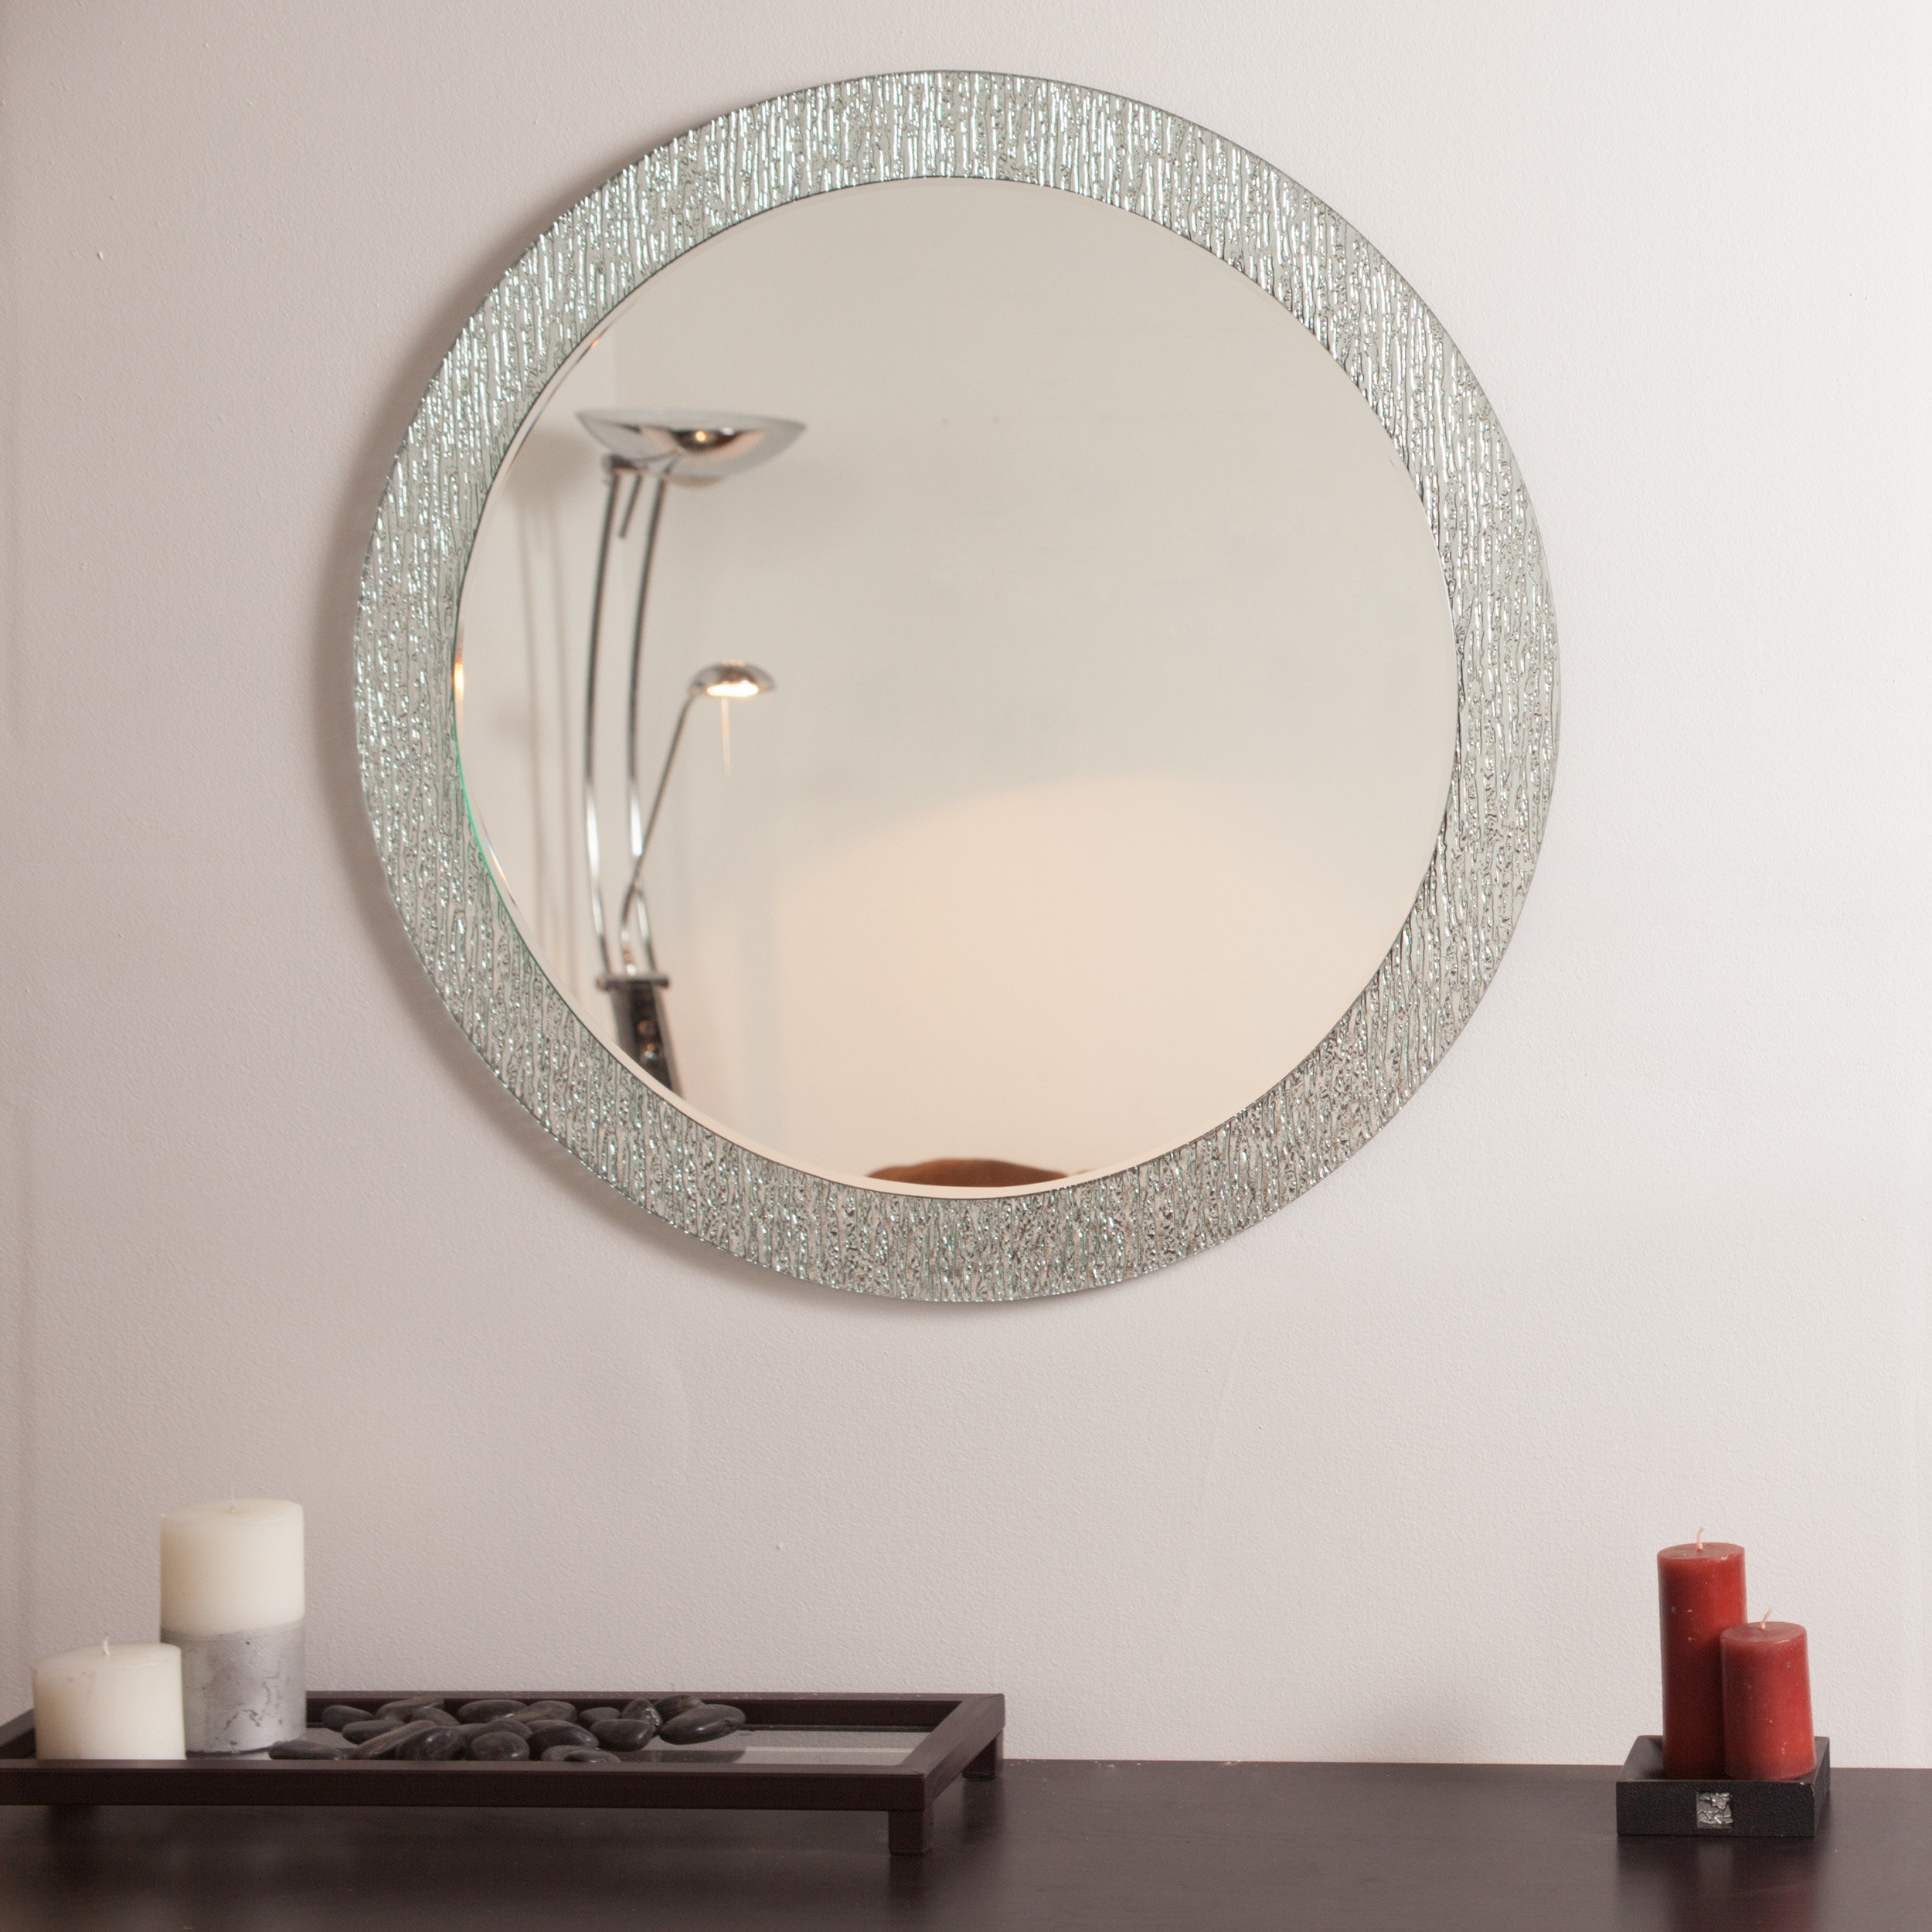 Point Reyes Molten Round Wall Mirror Regarding Tata Openwork Round Wall Mirrors (View 21 of 30)